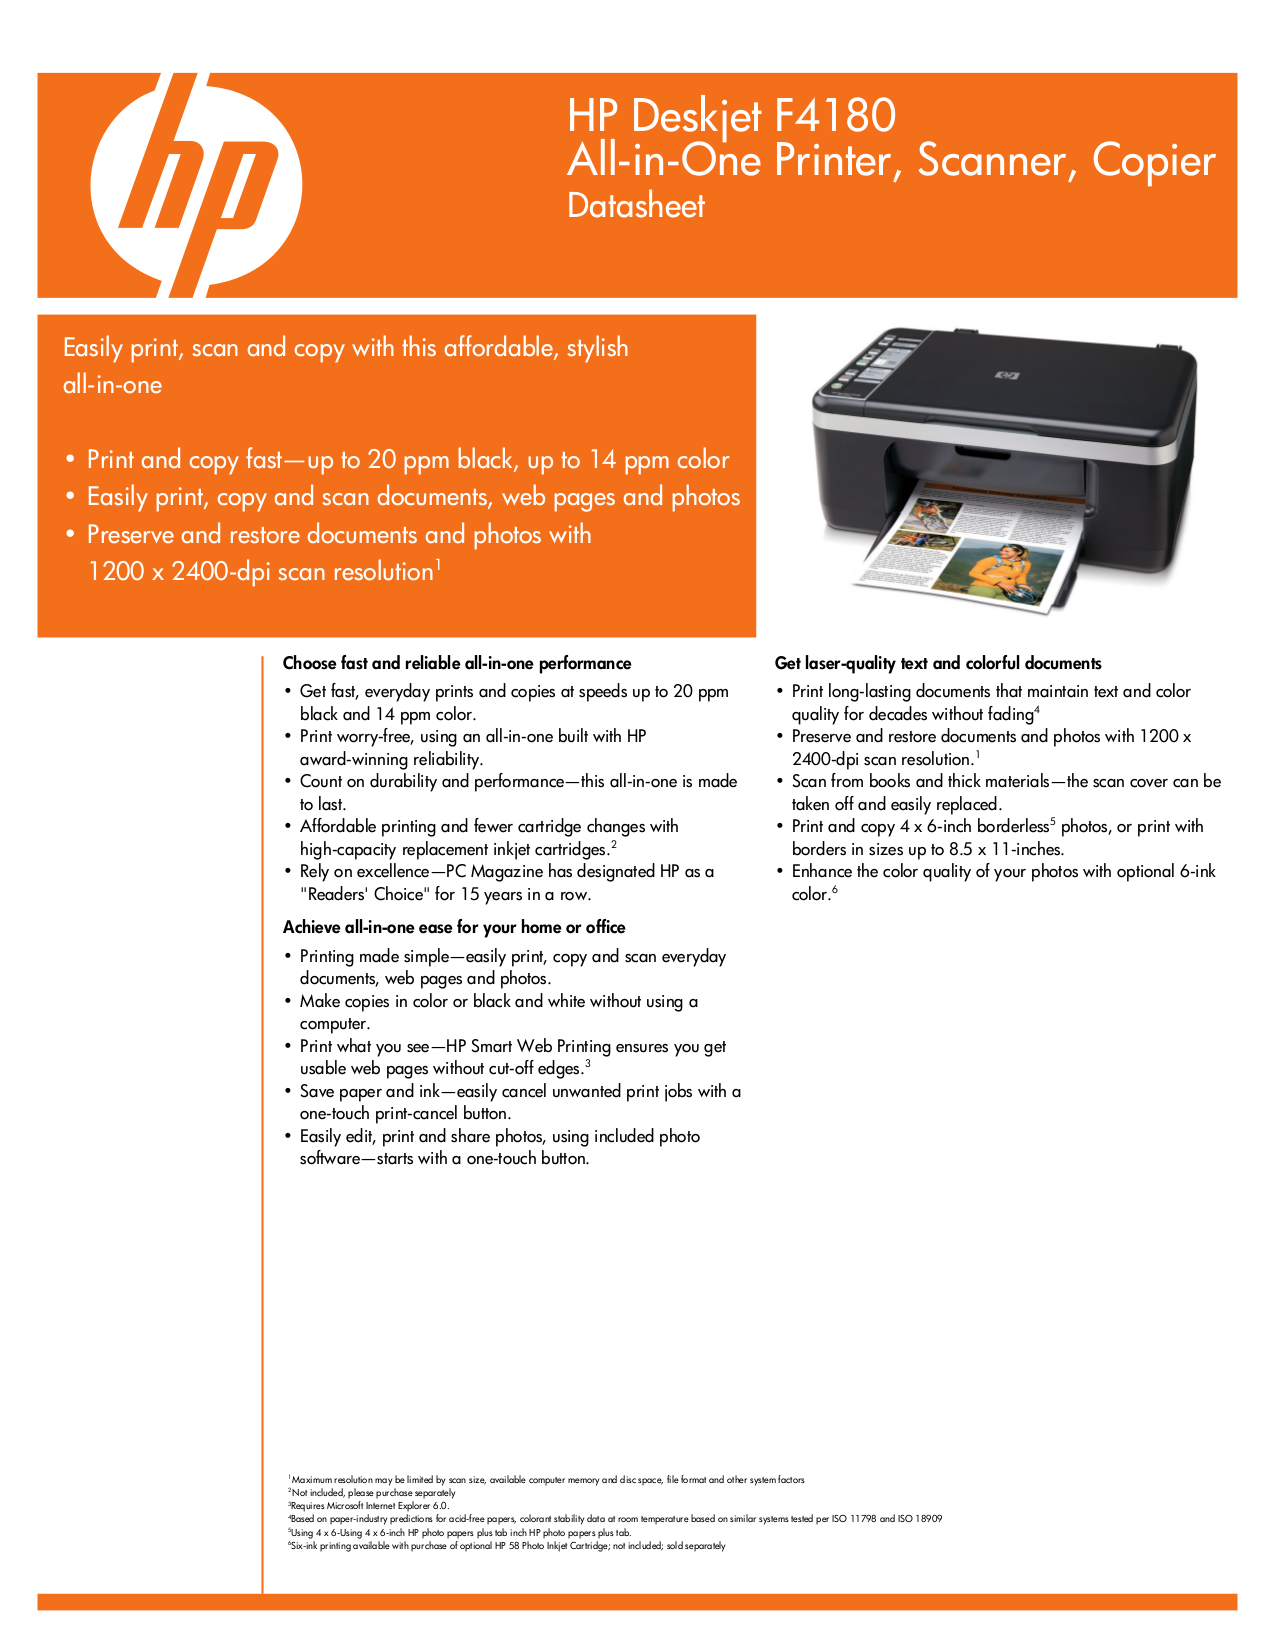 hewlett packard manual for printer daily instruction manual guides u2022 rh testingwordpress co HP Printers HP Printers